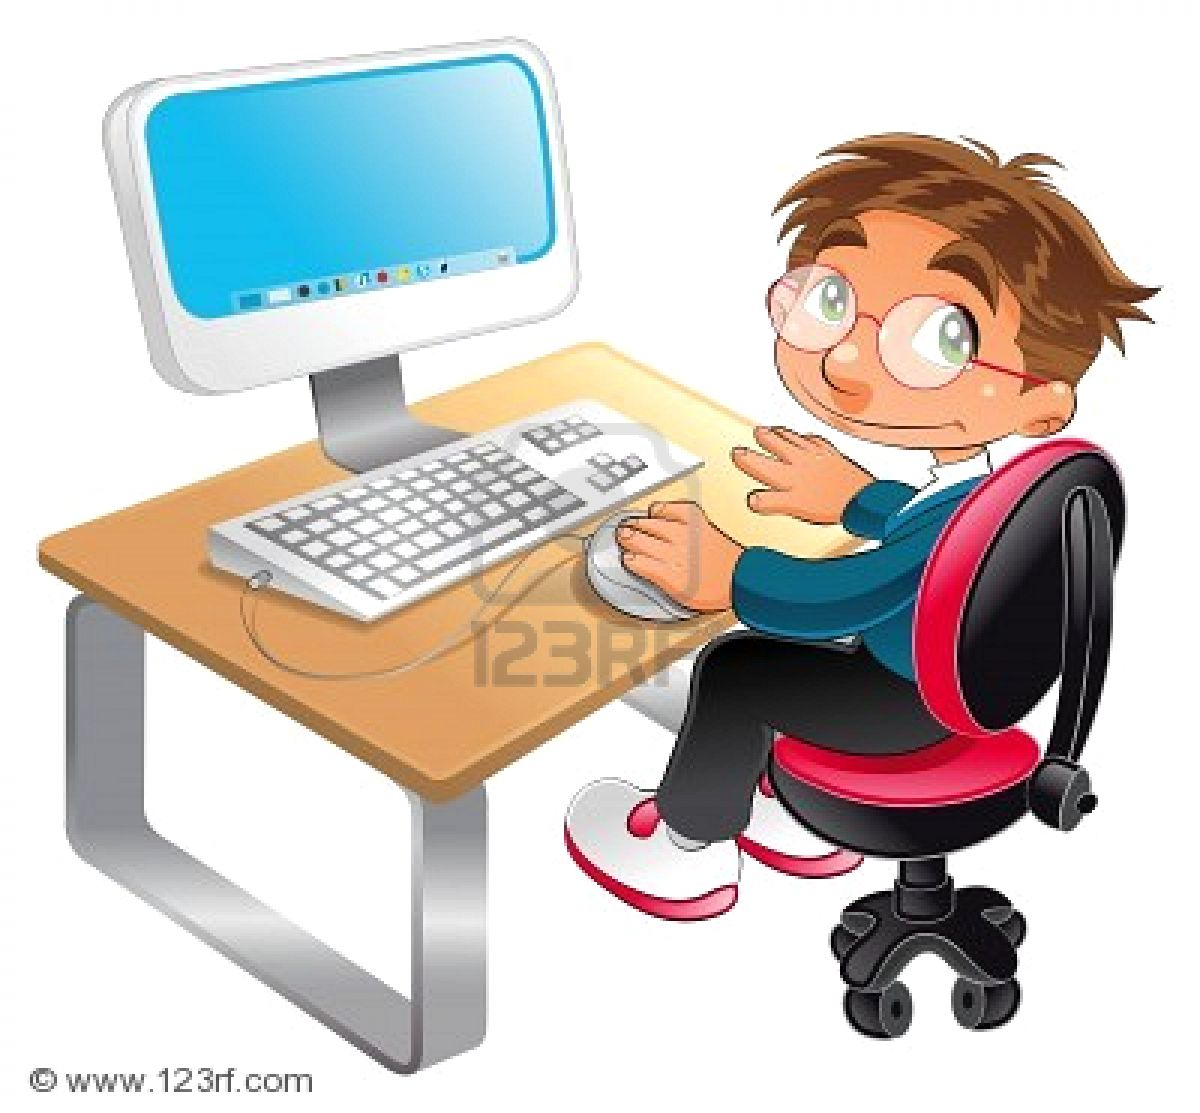 Cartoon Boy On Computer